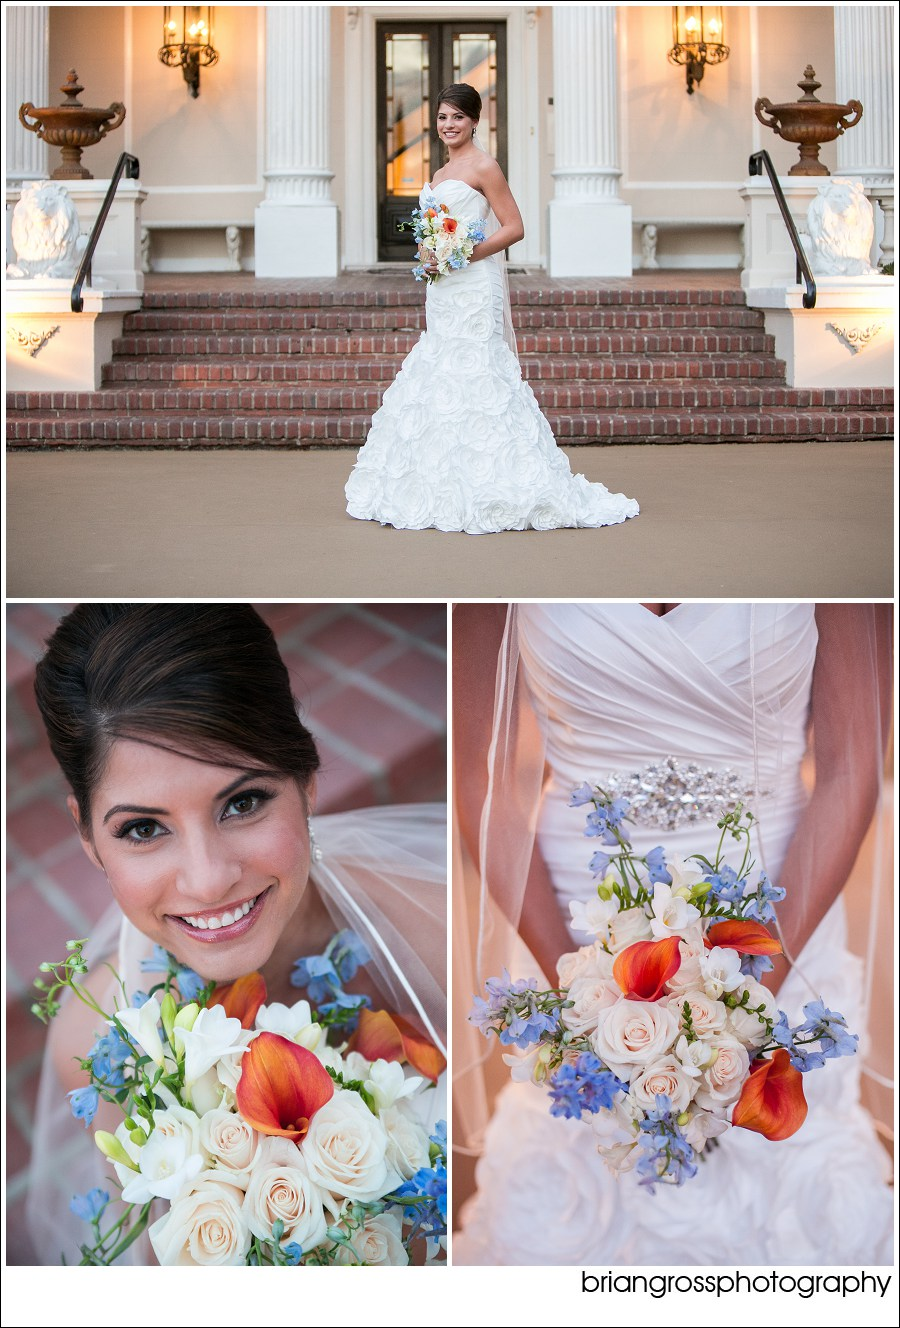 PhilPaulaWeddingBlog_Grand_Island_Mansion_Wedding_briangrossphotography-190_WEB